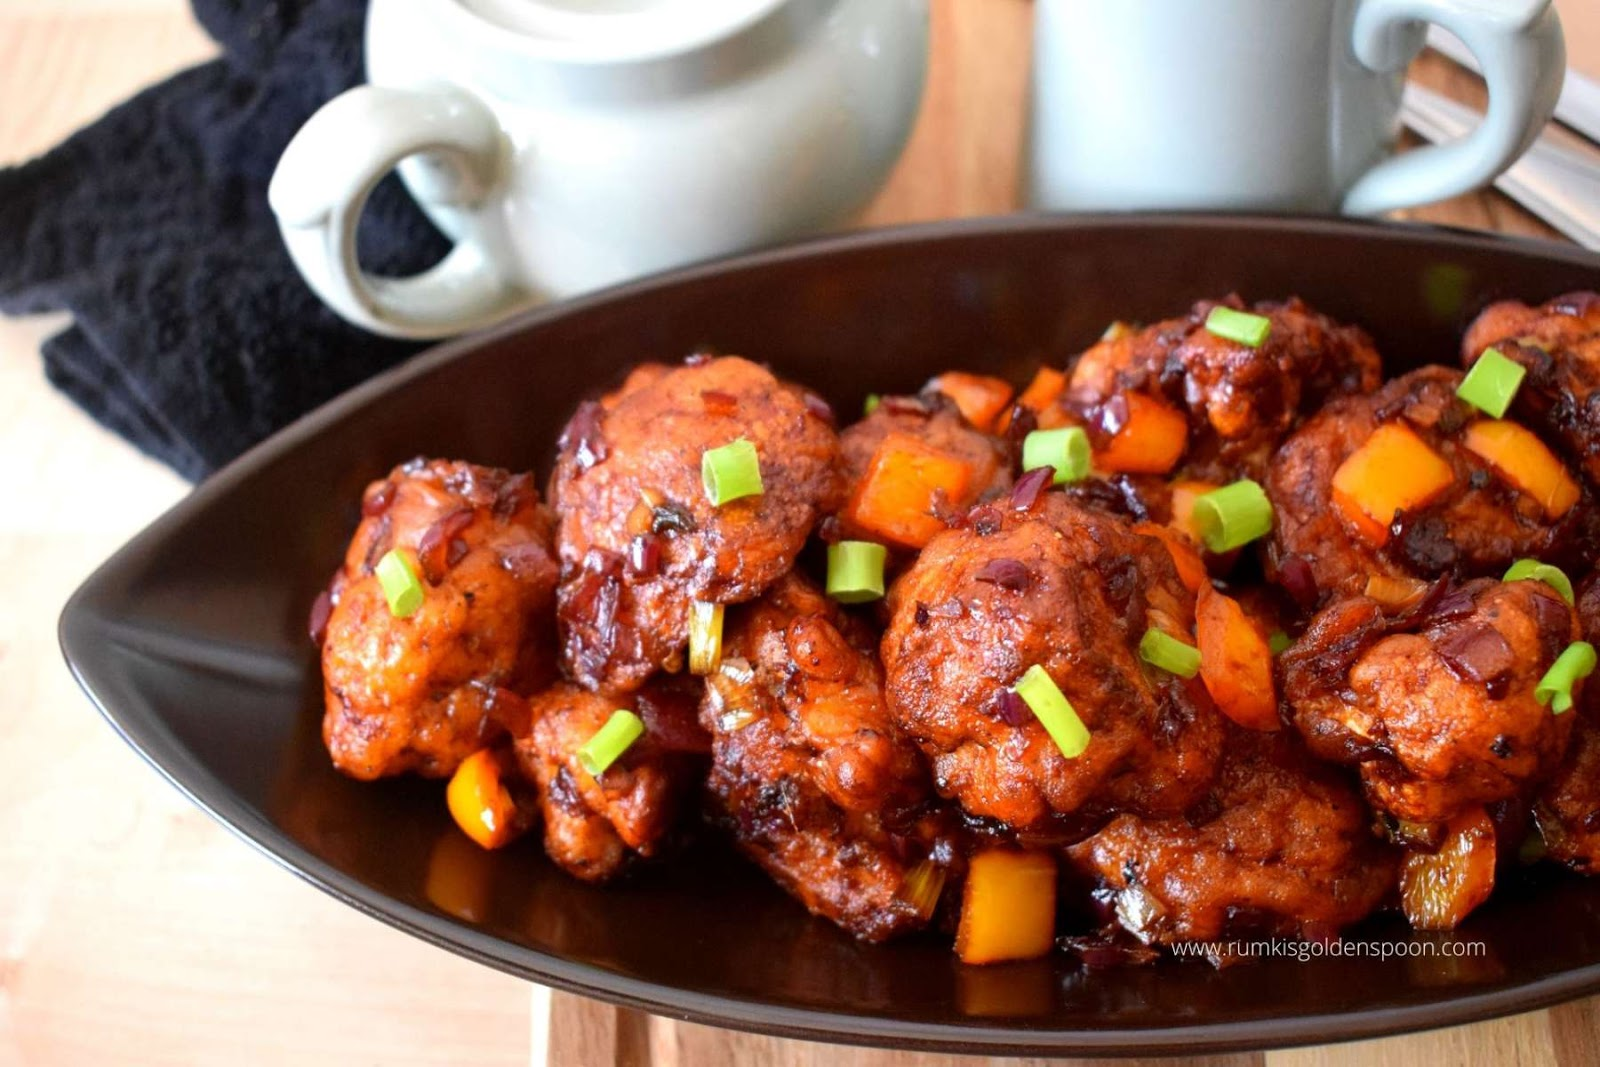 Gobi Manchurian Recipe How To Make Gobi Manchurian Rumki S Golden Spoon